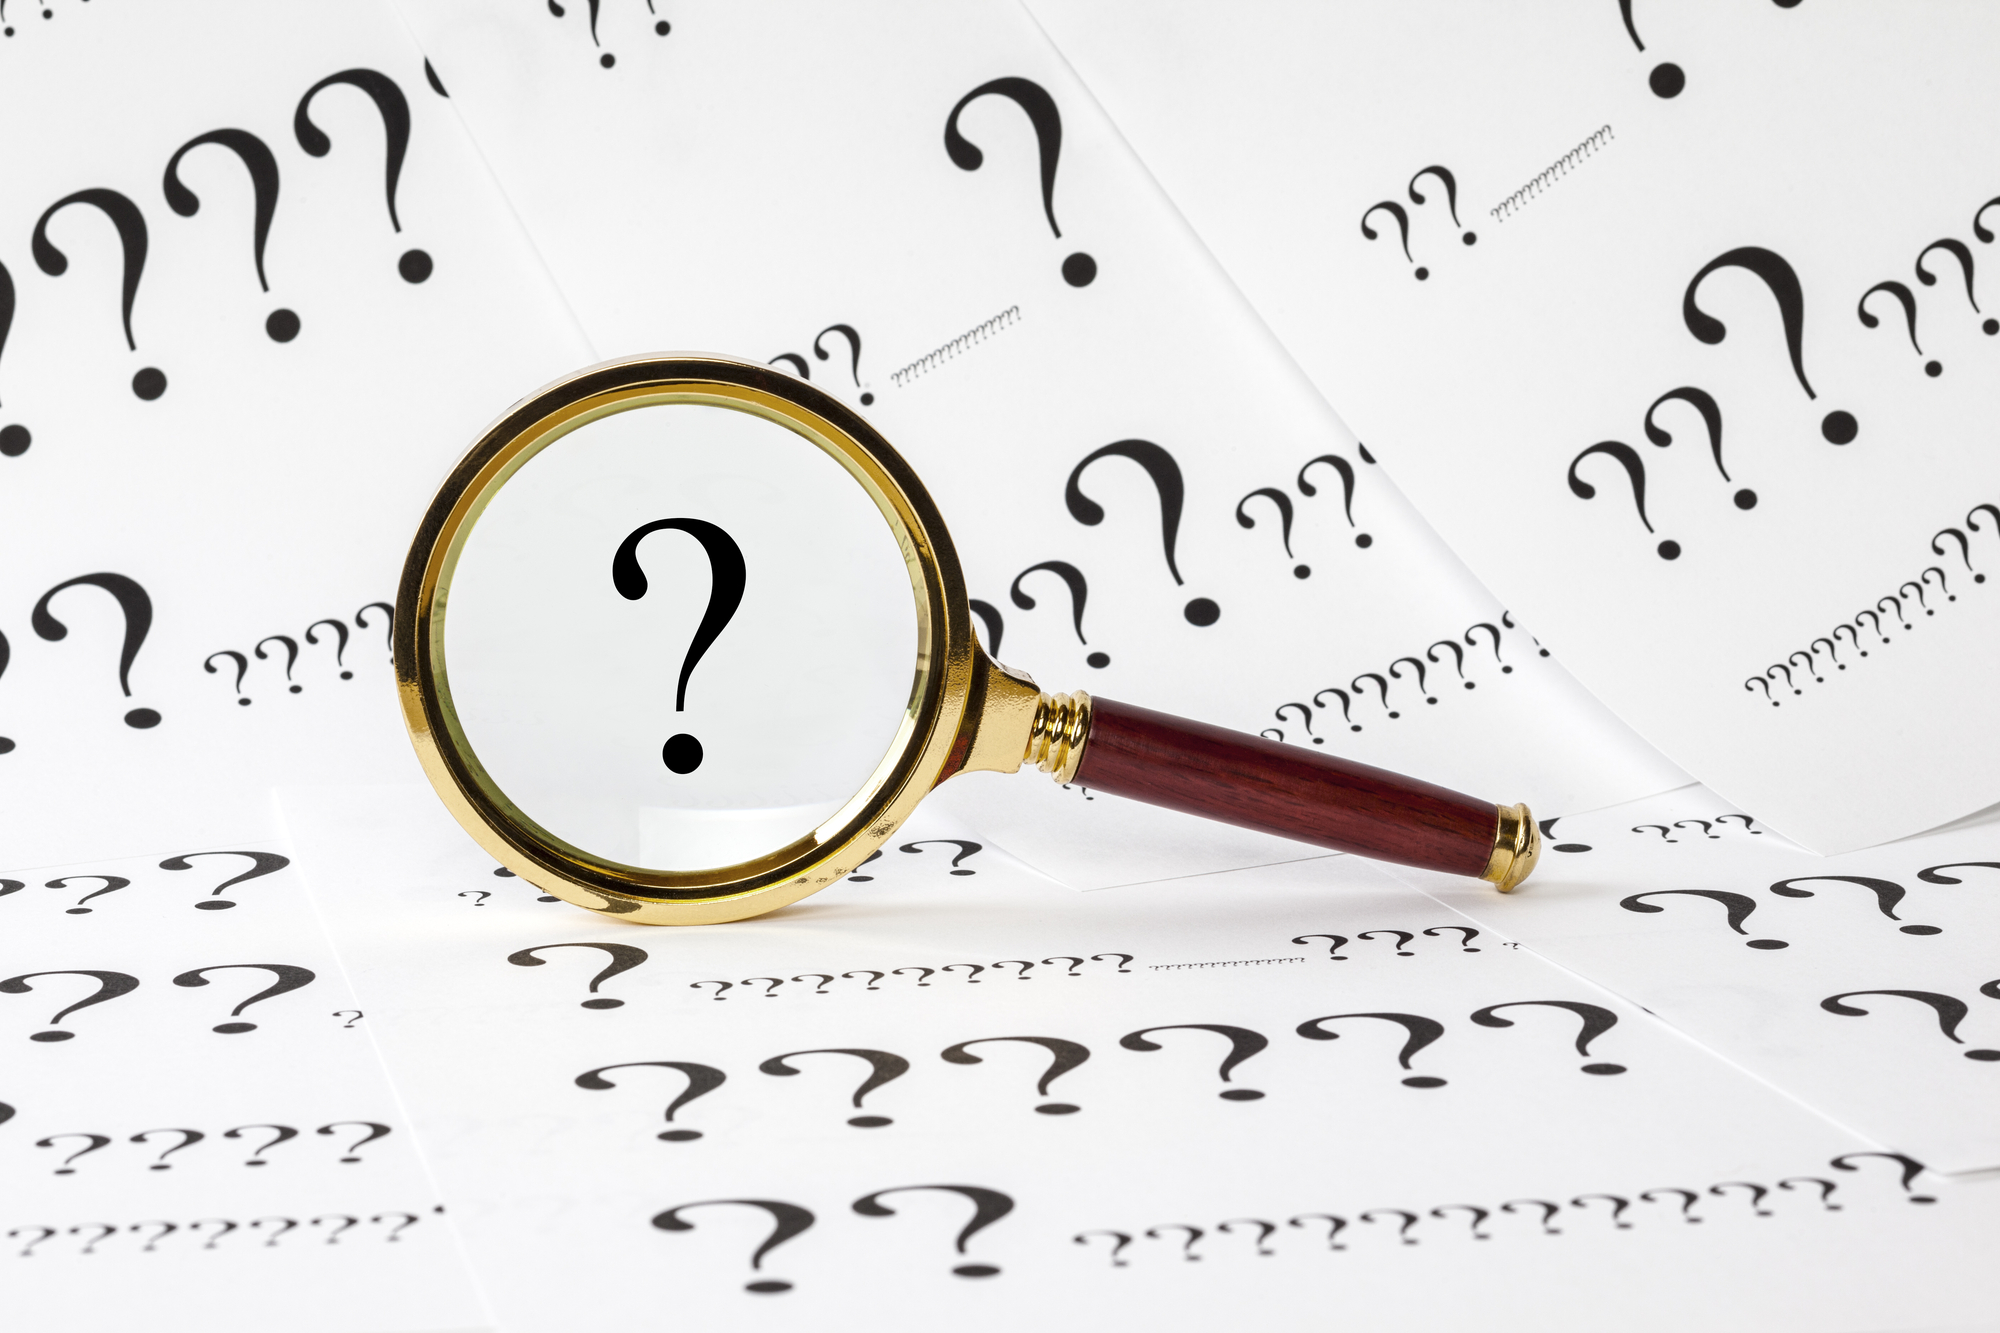 Question Concept with Magnifying Glass